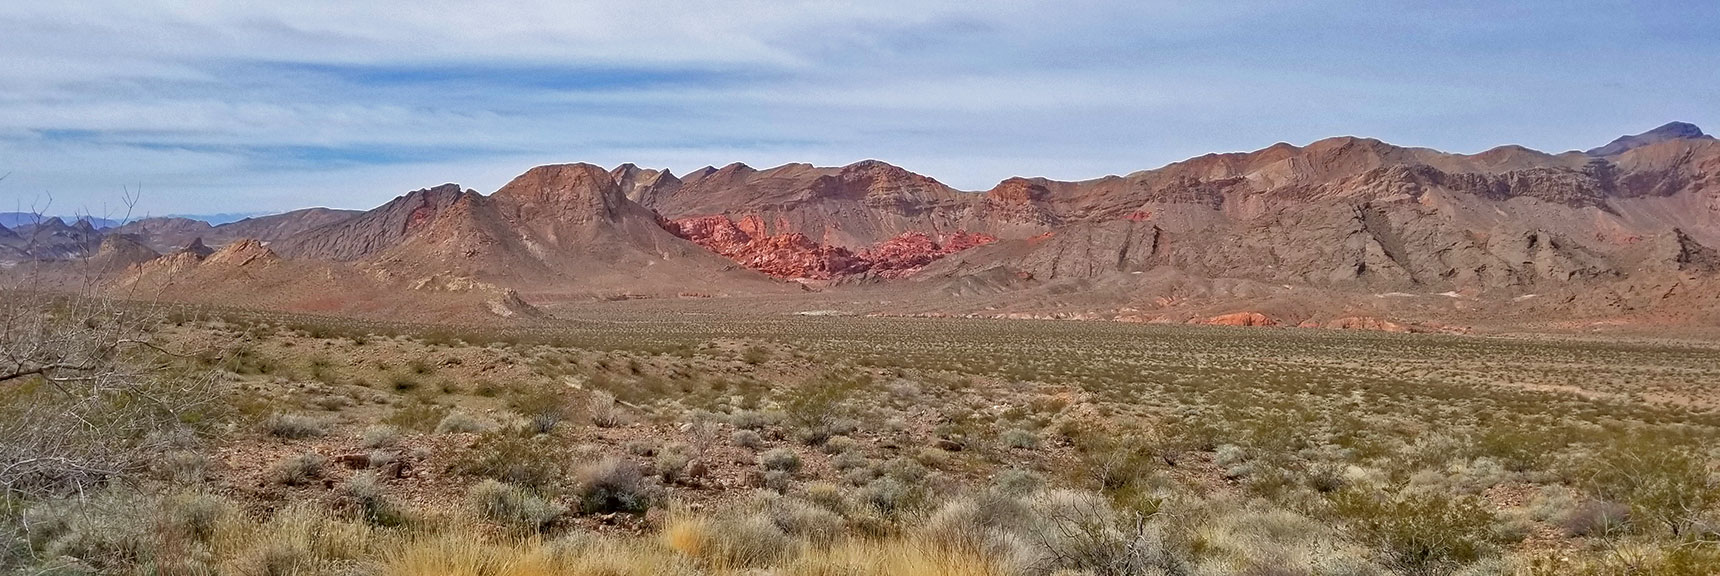 Bowl of Fire Viewed from About Mile 18 On Northshore Road in Lake Mead National Park, Nevada